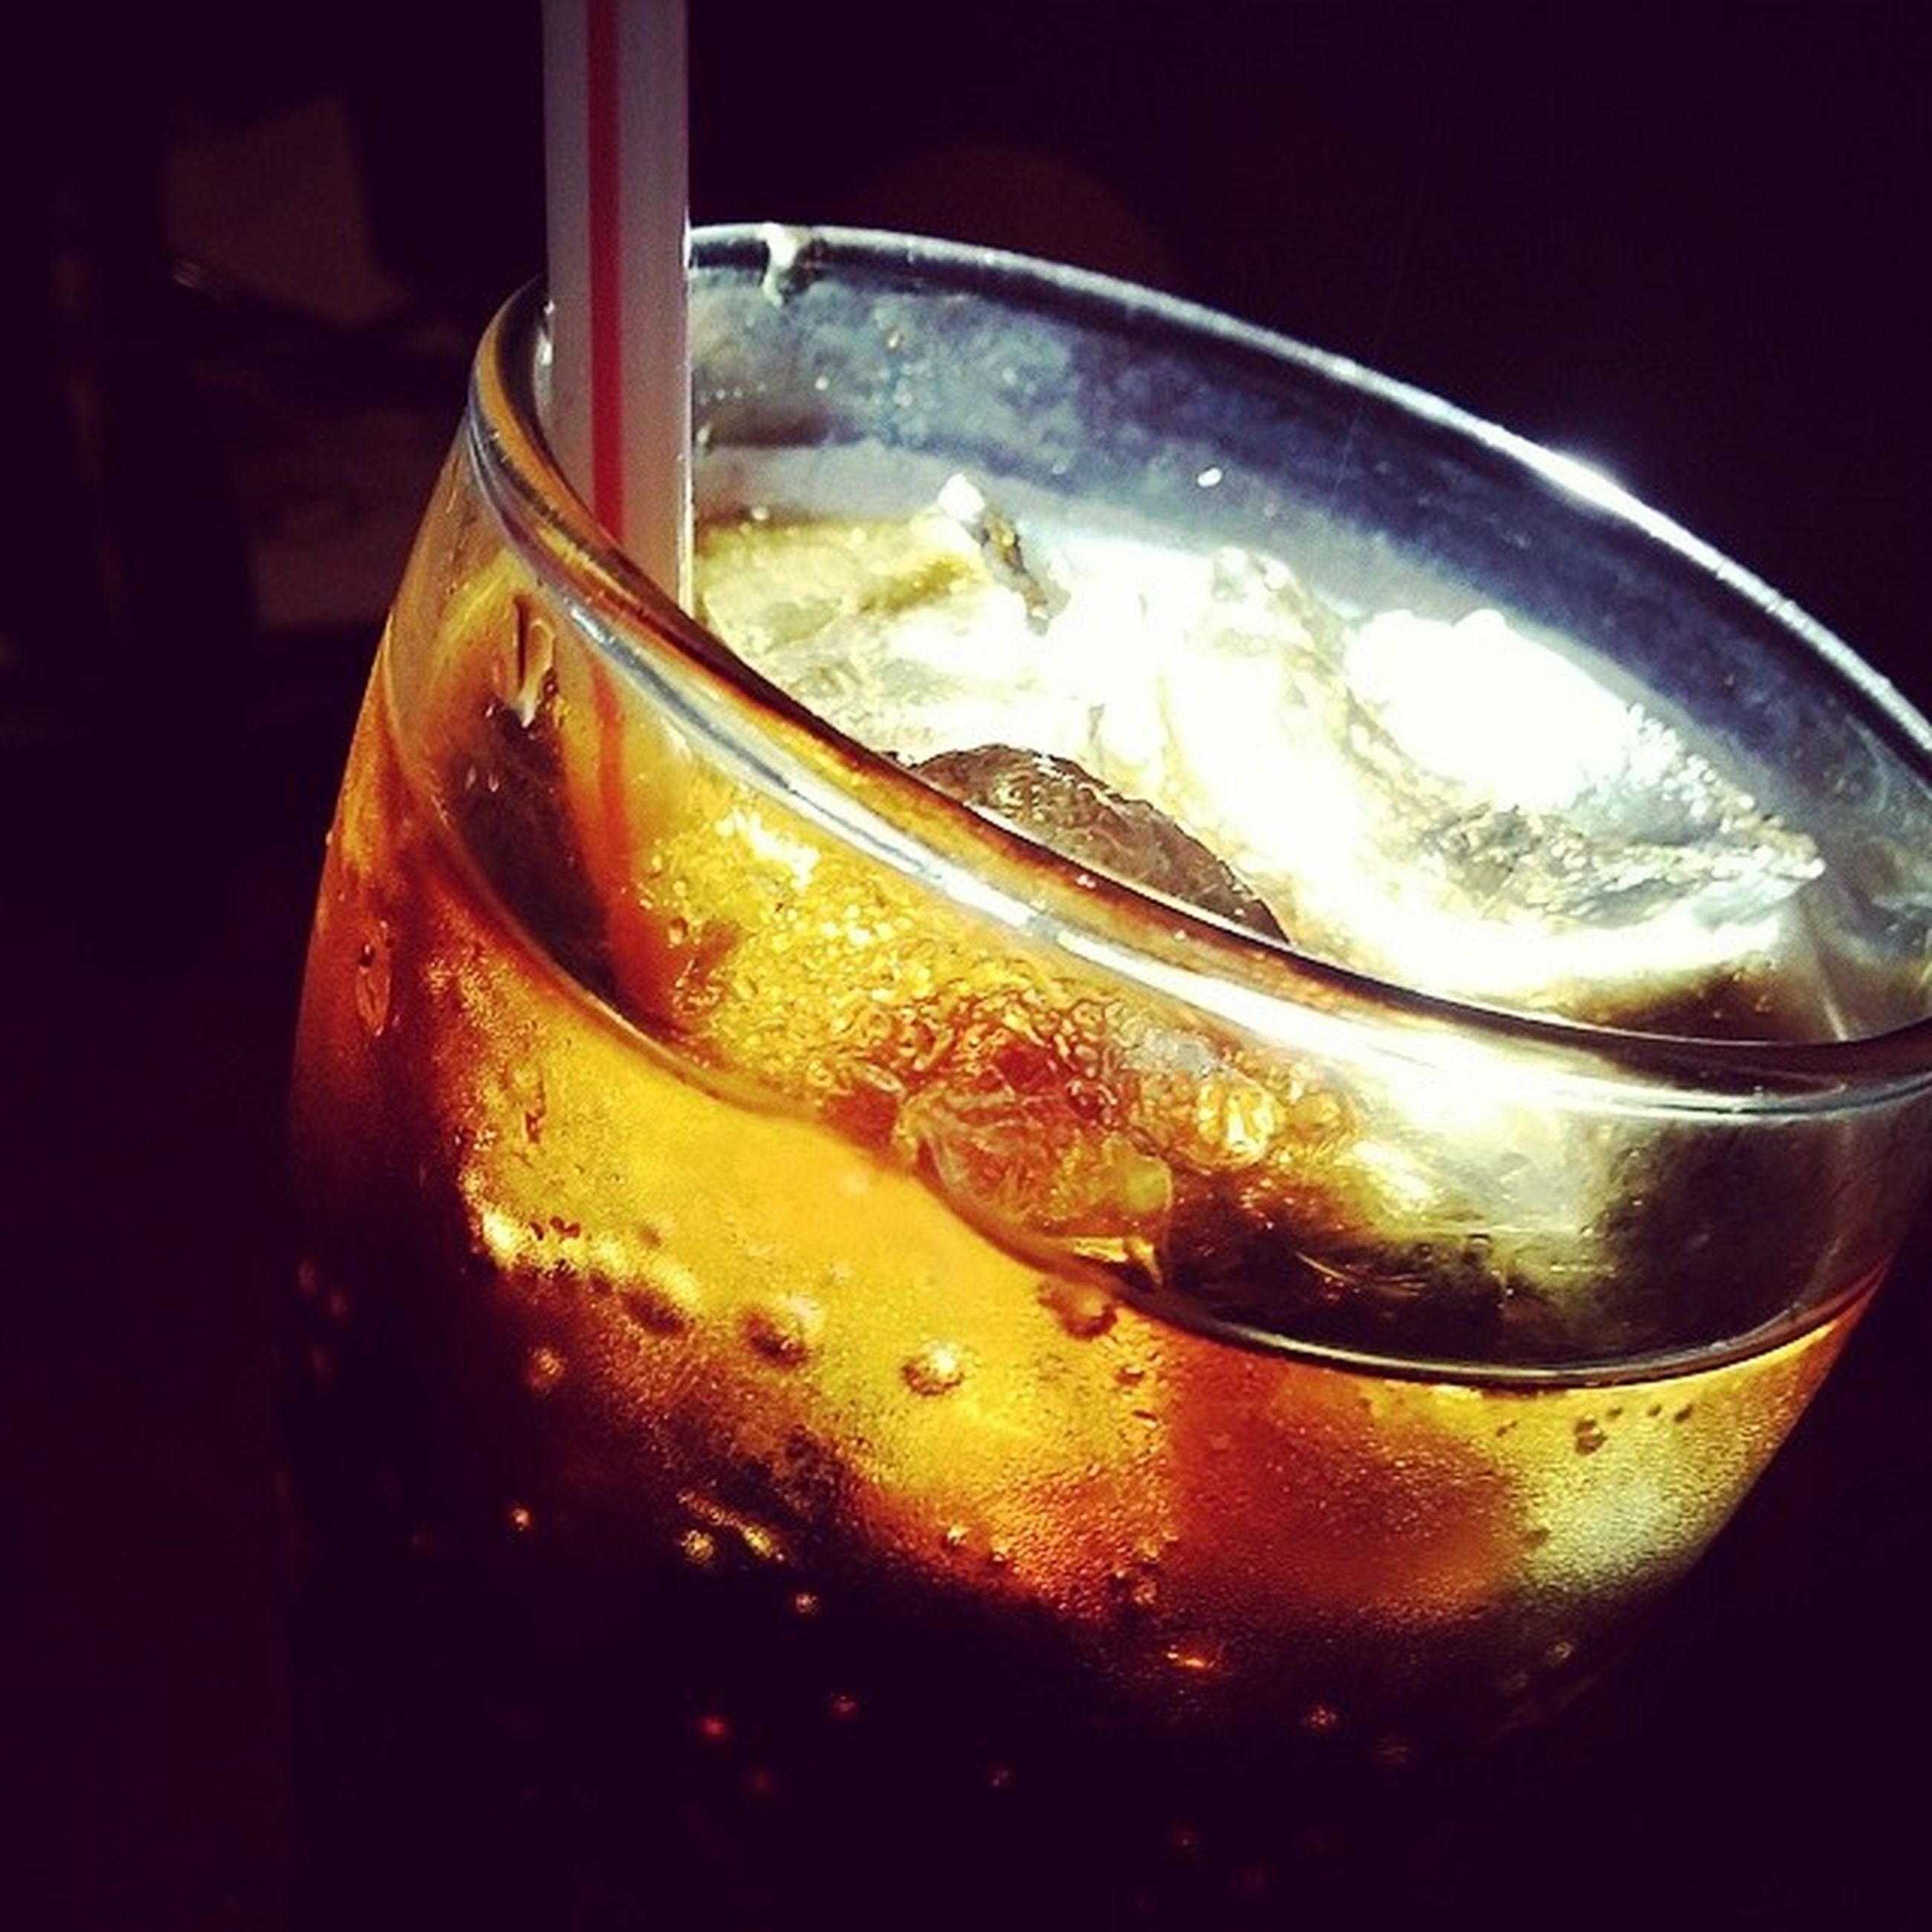 food and drink, drink, indoors, refreshment, drinking glass, freshness, close-up, still life, table, glass - material, healthy eating, alcohol, ice cube, drinking straw, food, frothy drink, glass, transparent, liquid, no people